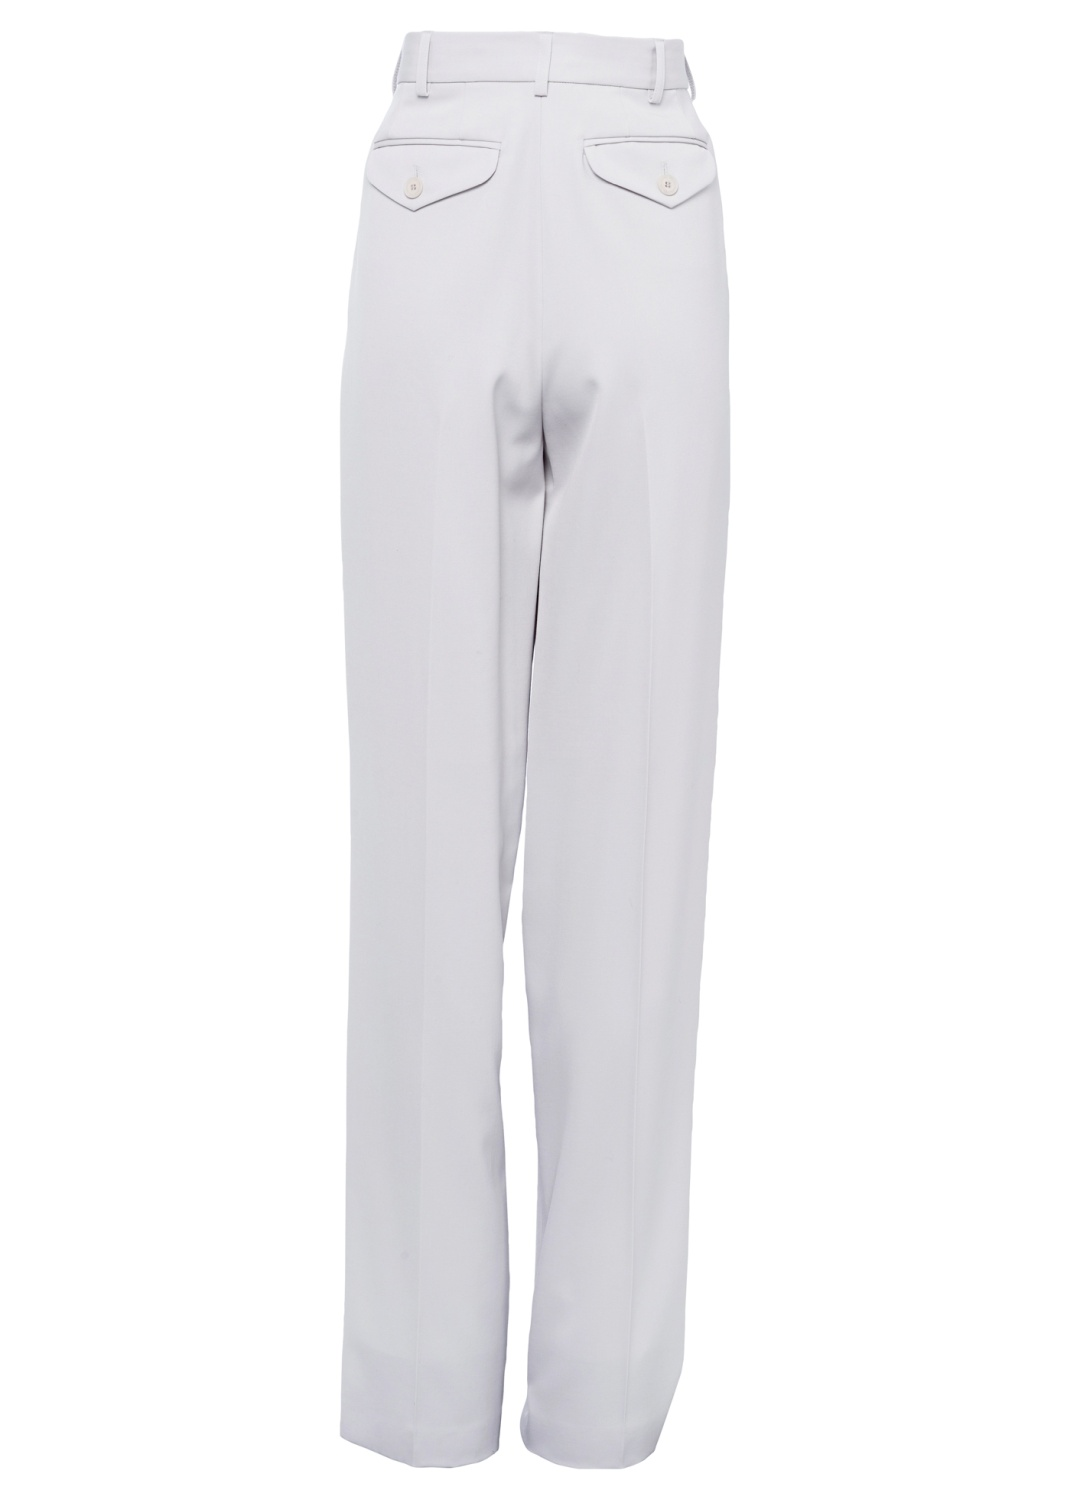 Louise Trouser Wool Twill Tailoring image number 1